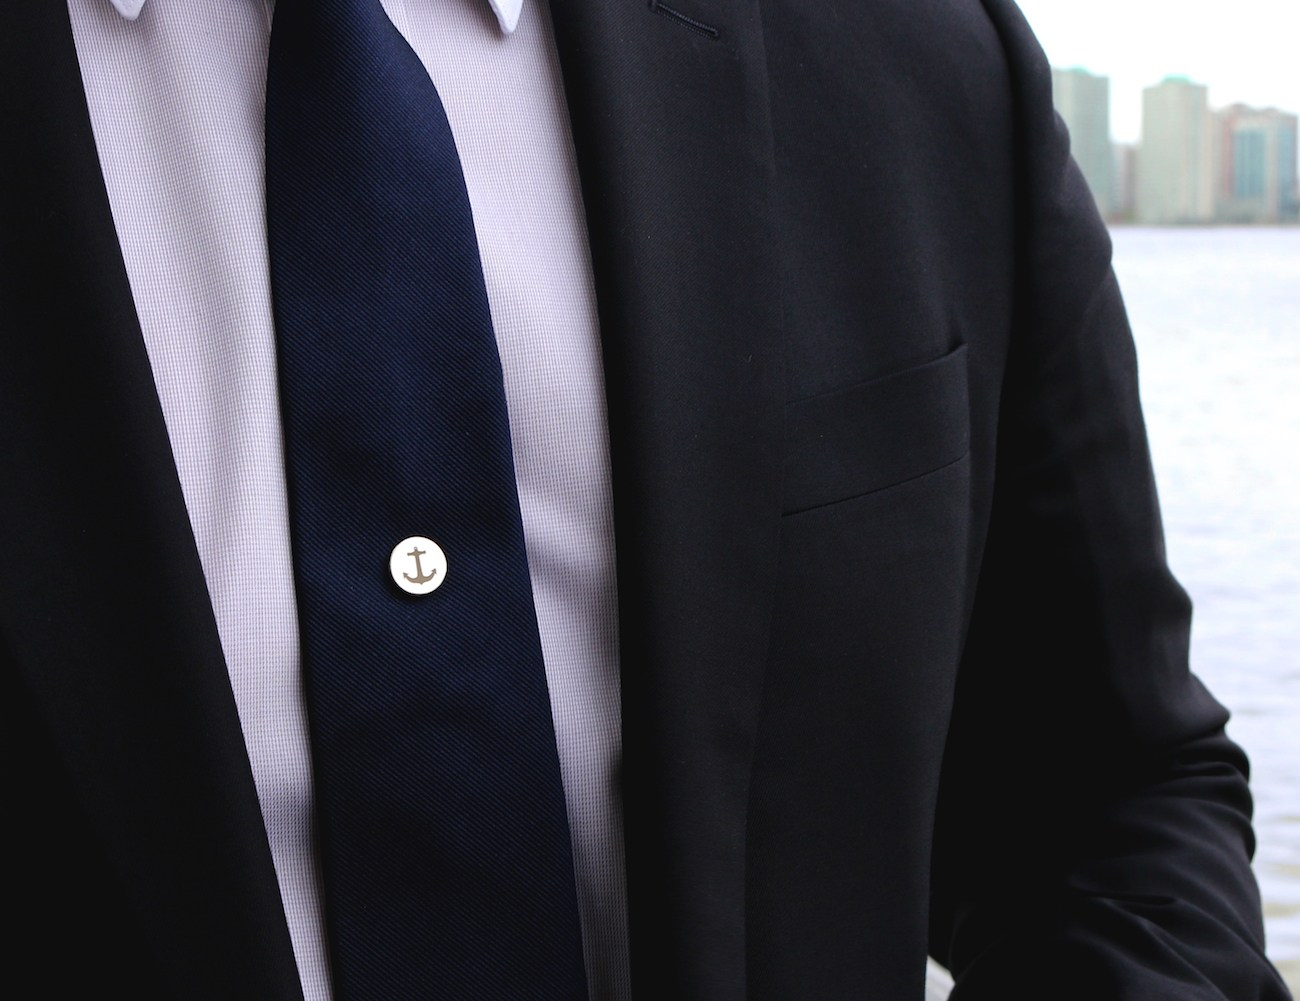 Tie Mags Magnetic Tie Clips